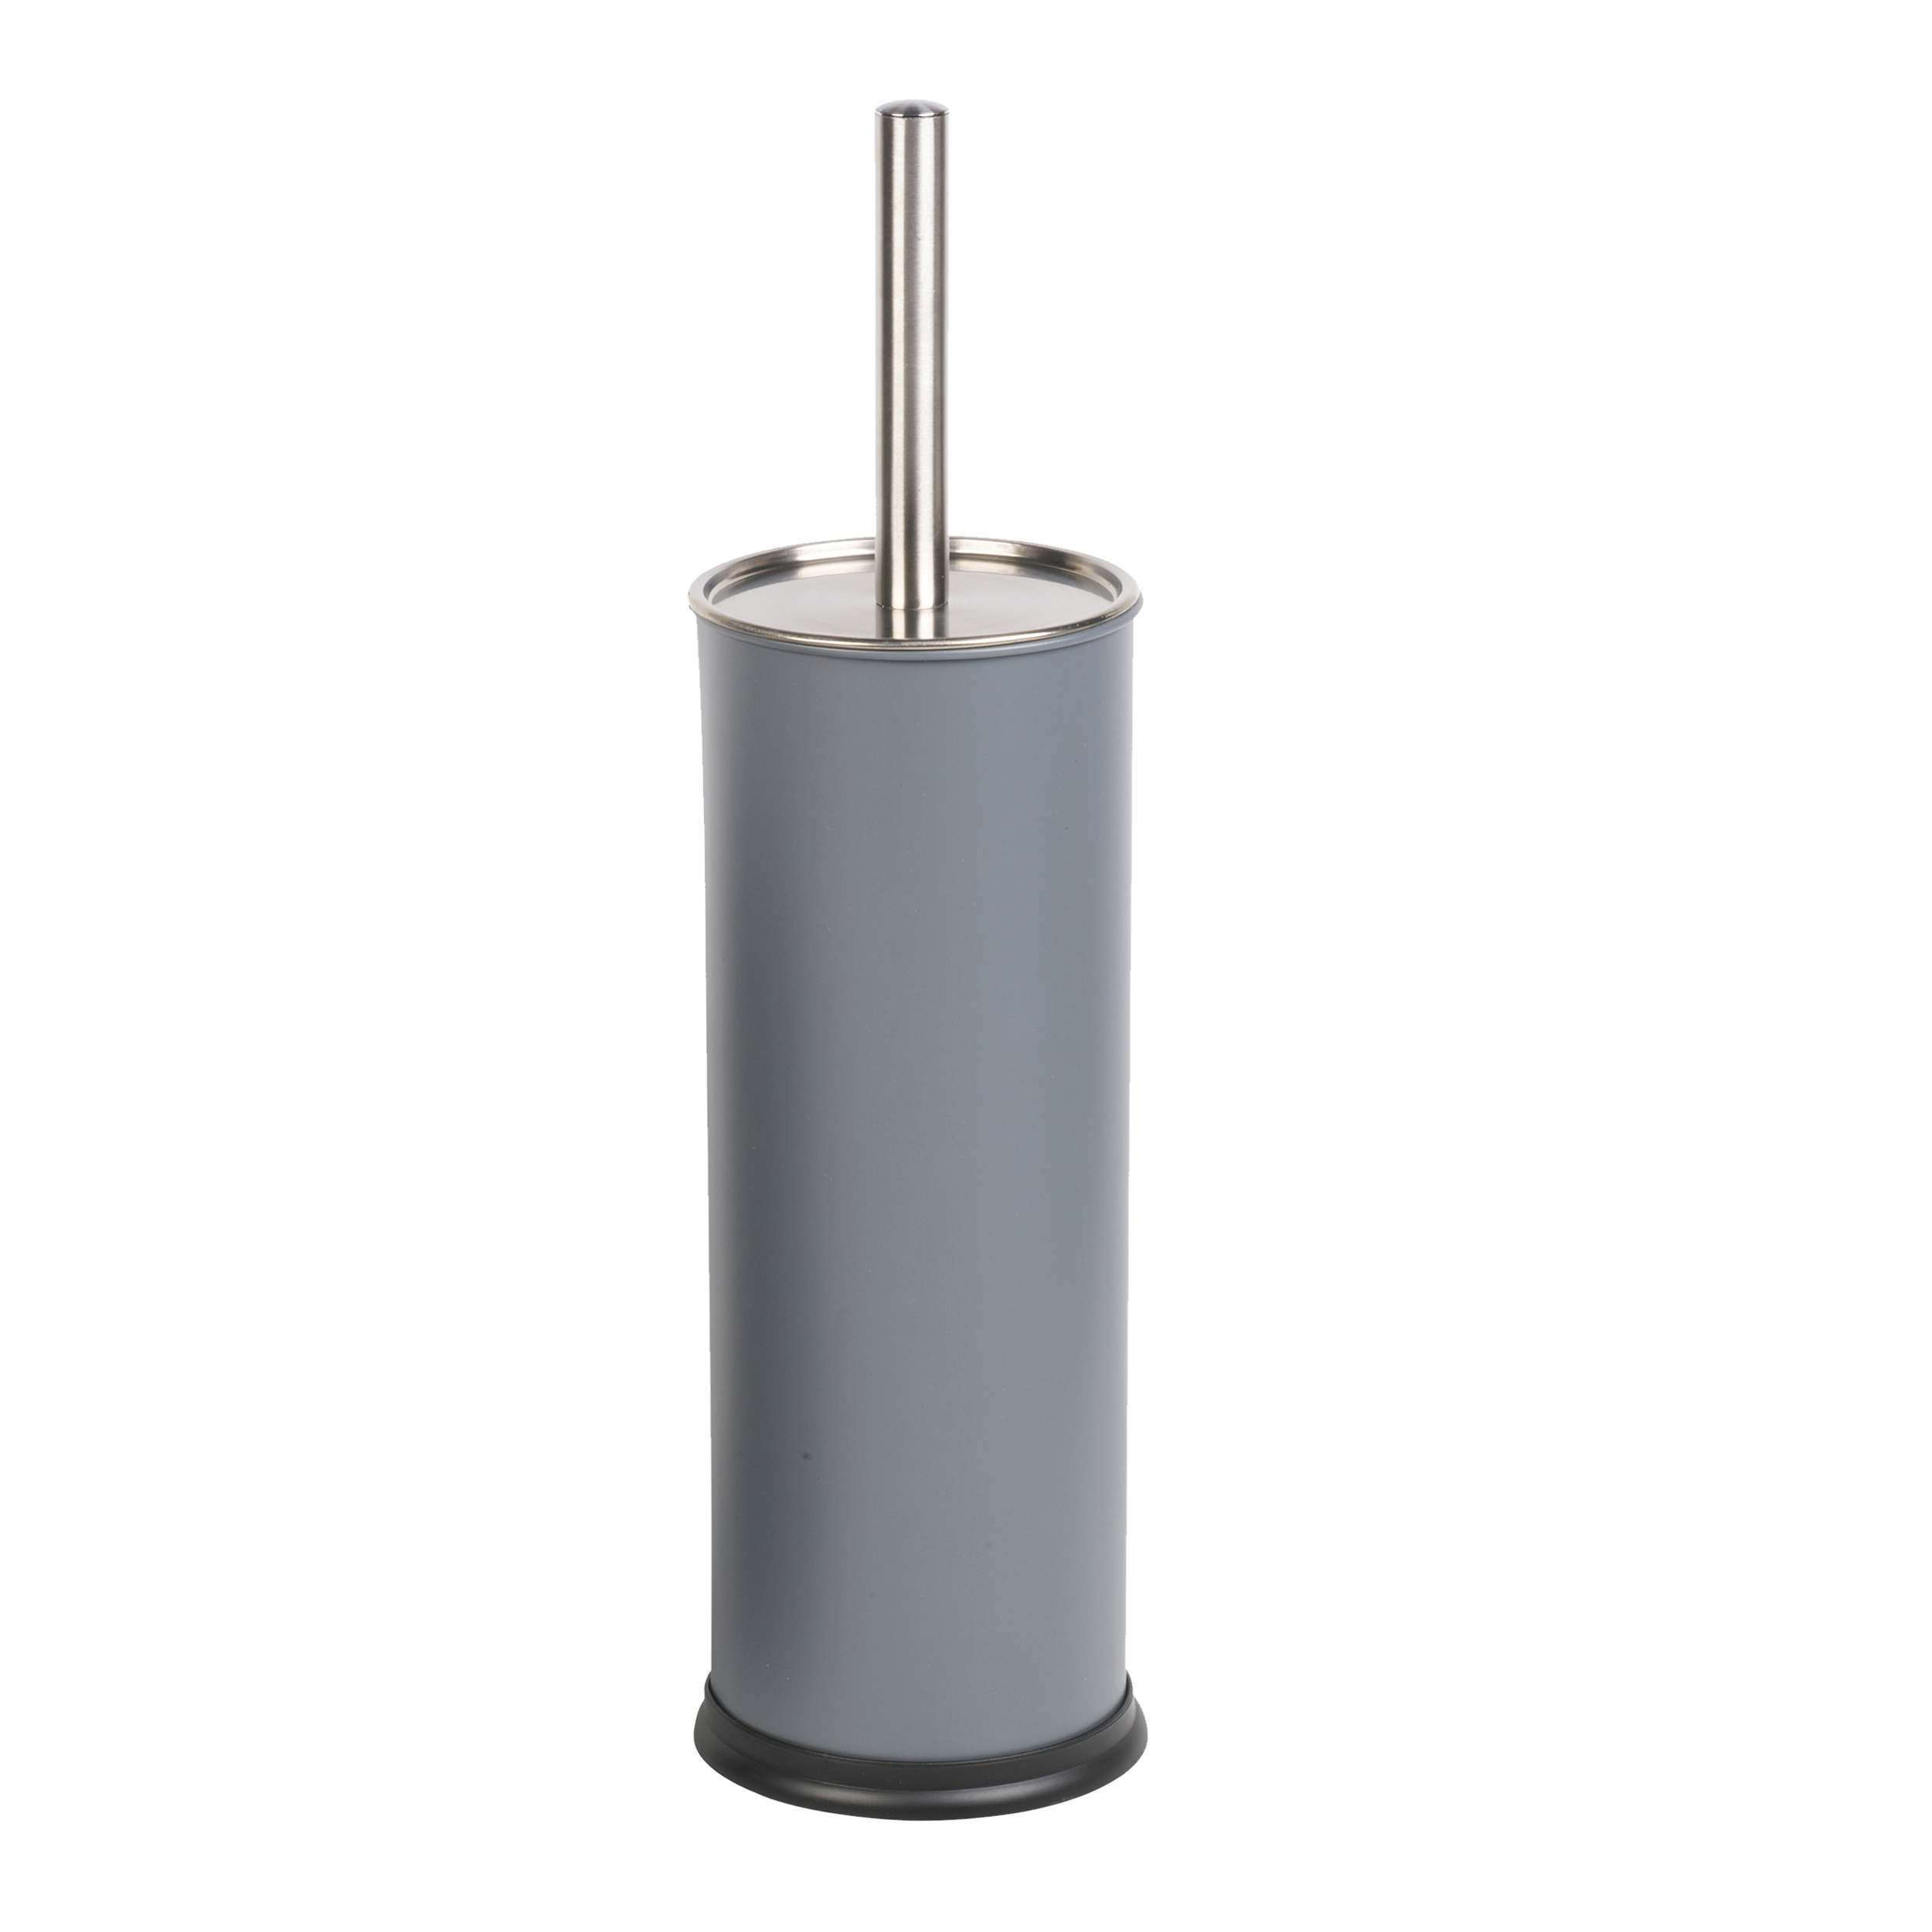 bathroom toilet brush holder accessory loo stainless steel handle cover cleaner. Black Bedroom Furniture Sets. Home Design Ideas